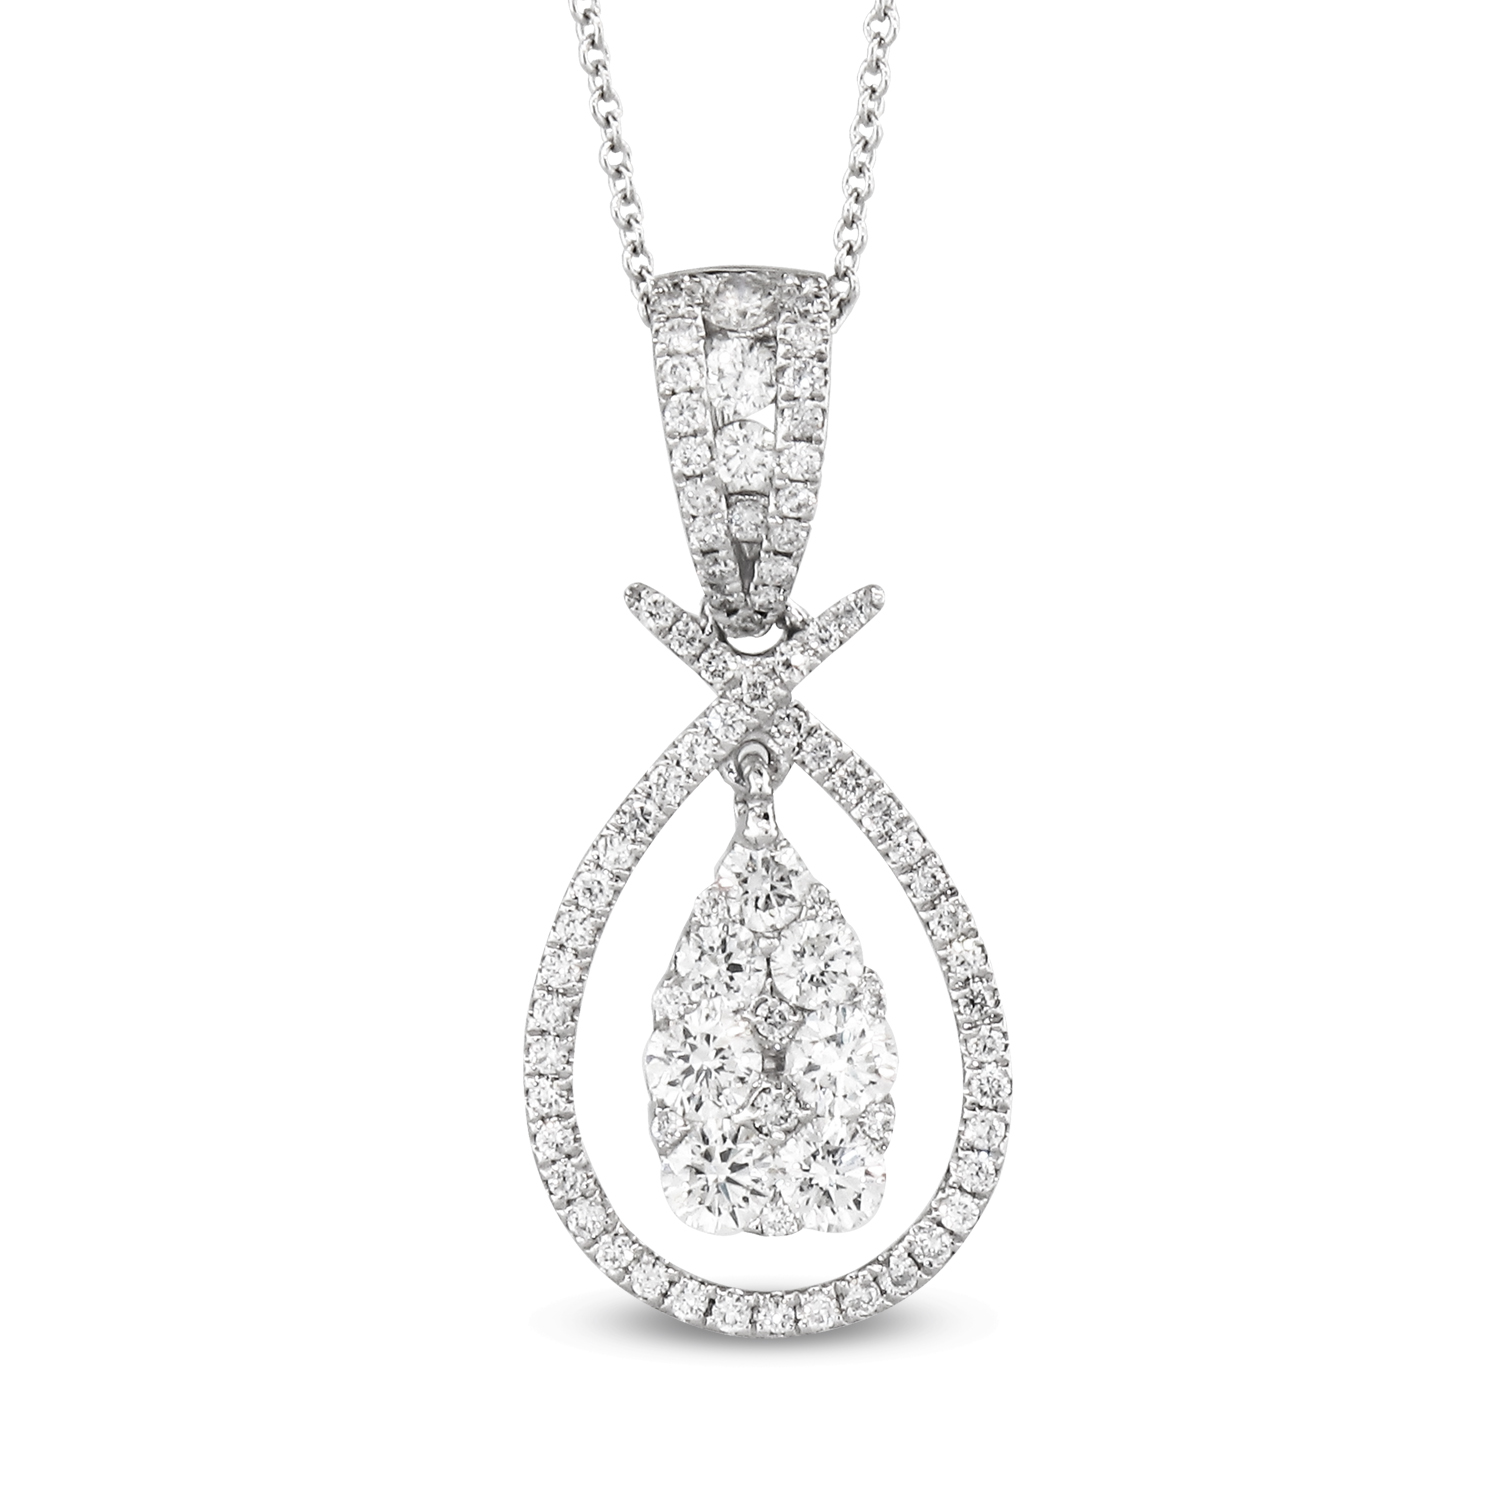 View 1.16ctw Diamond Pear Shaped Fashion Pendant in 18k WG